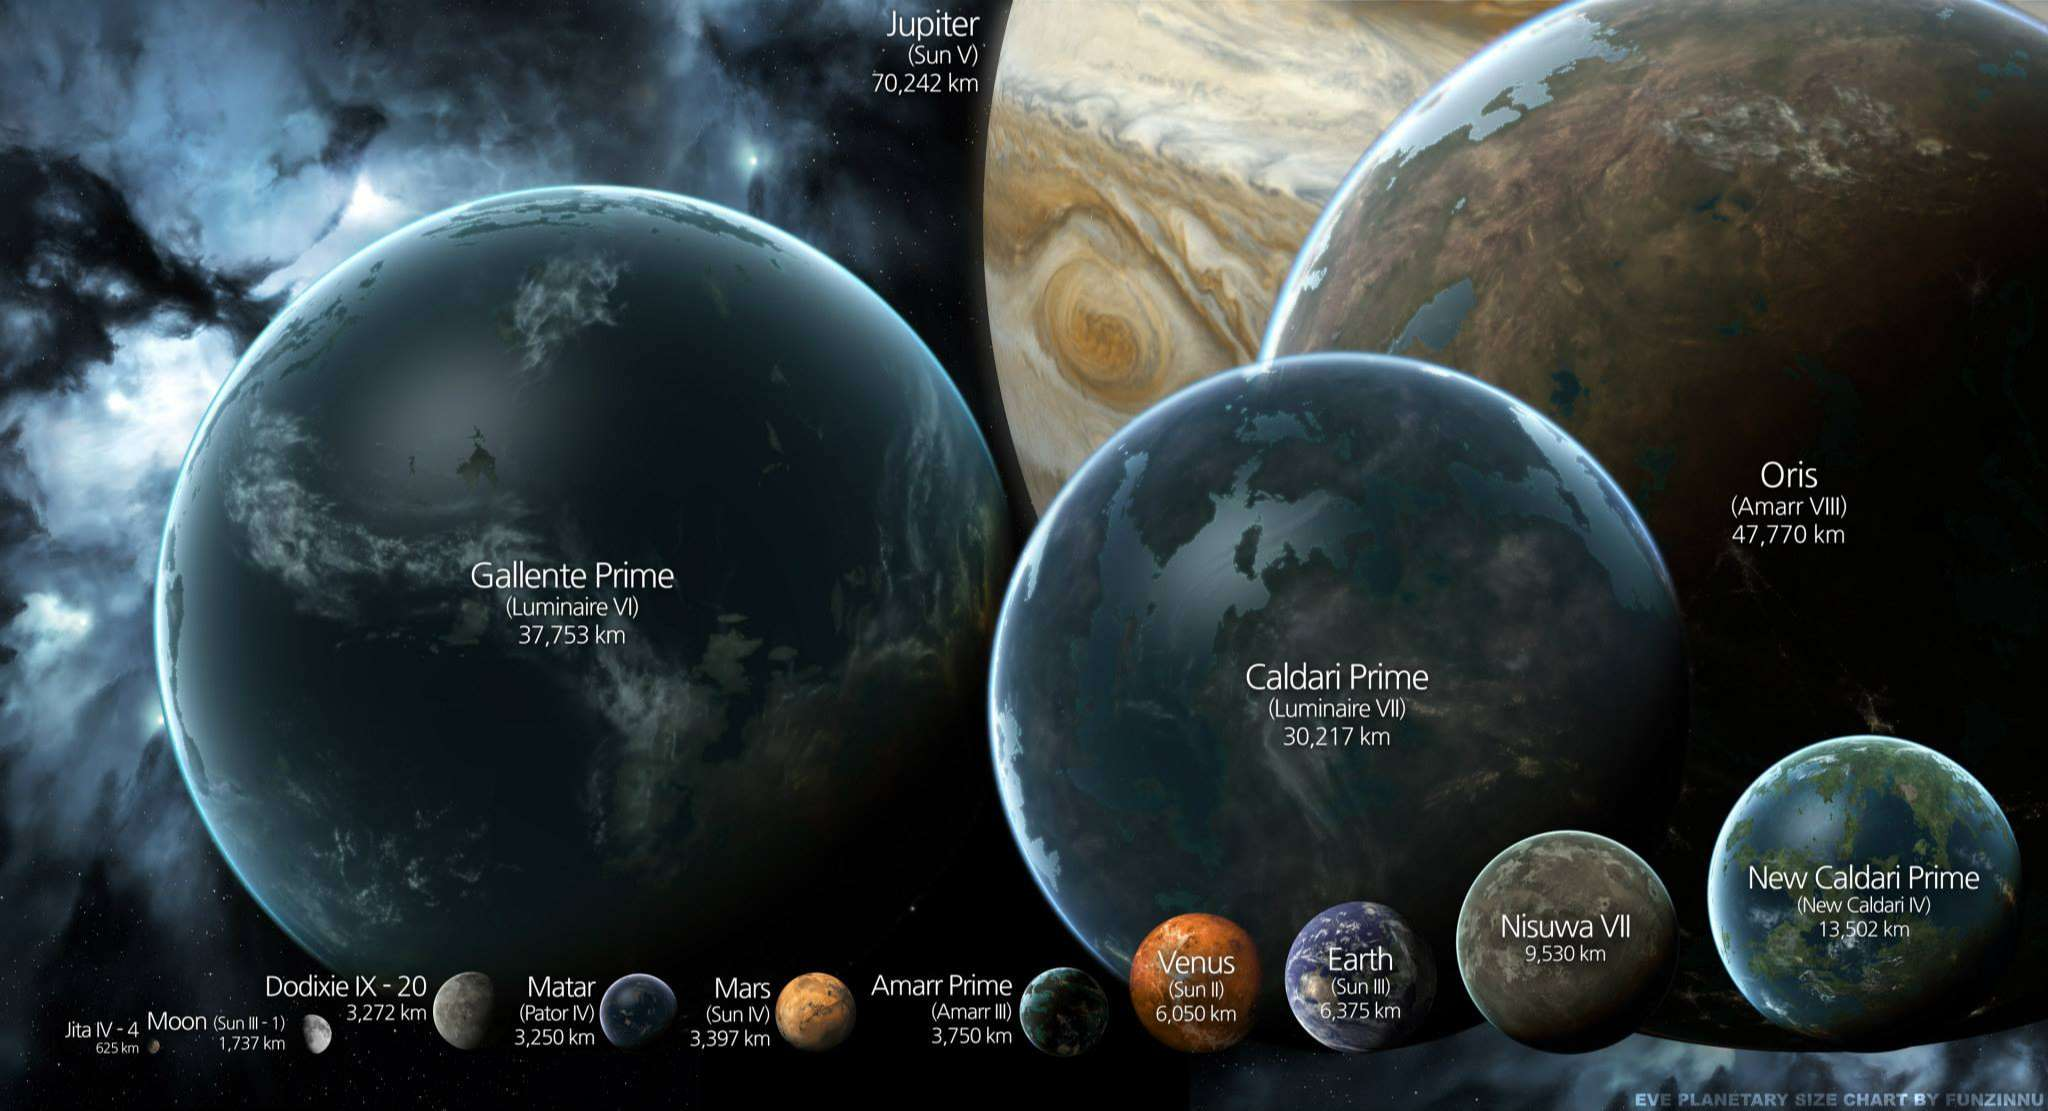 comparison of well known planets